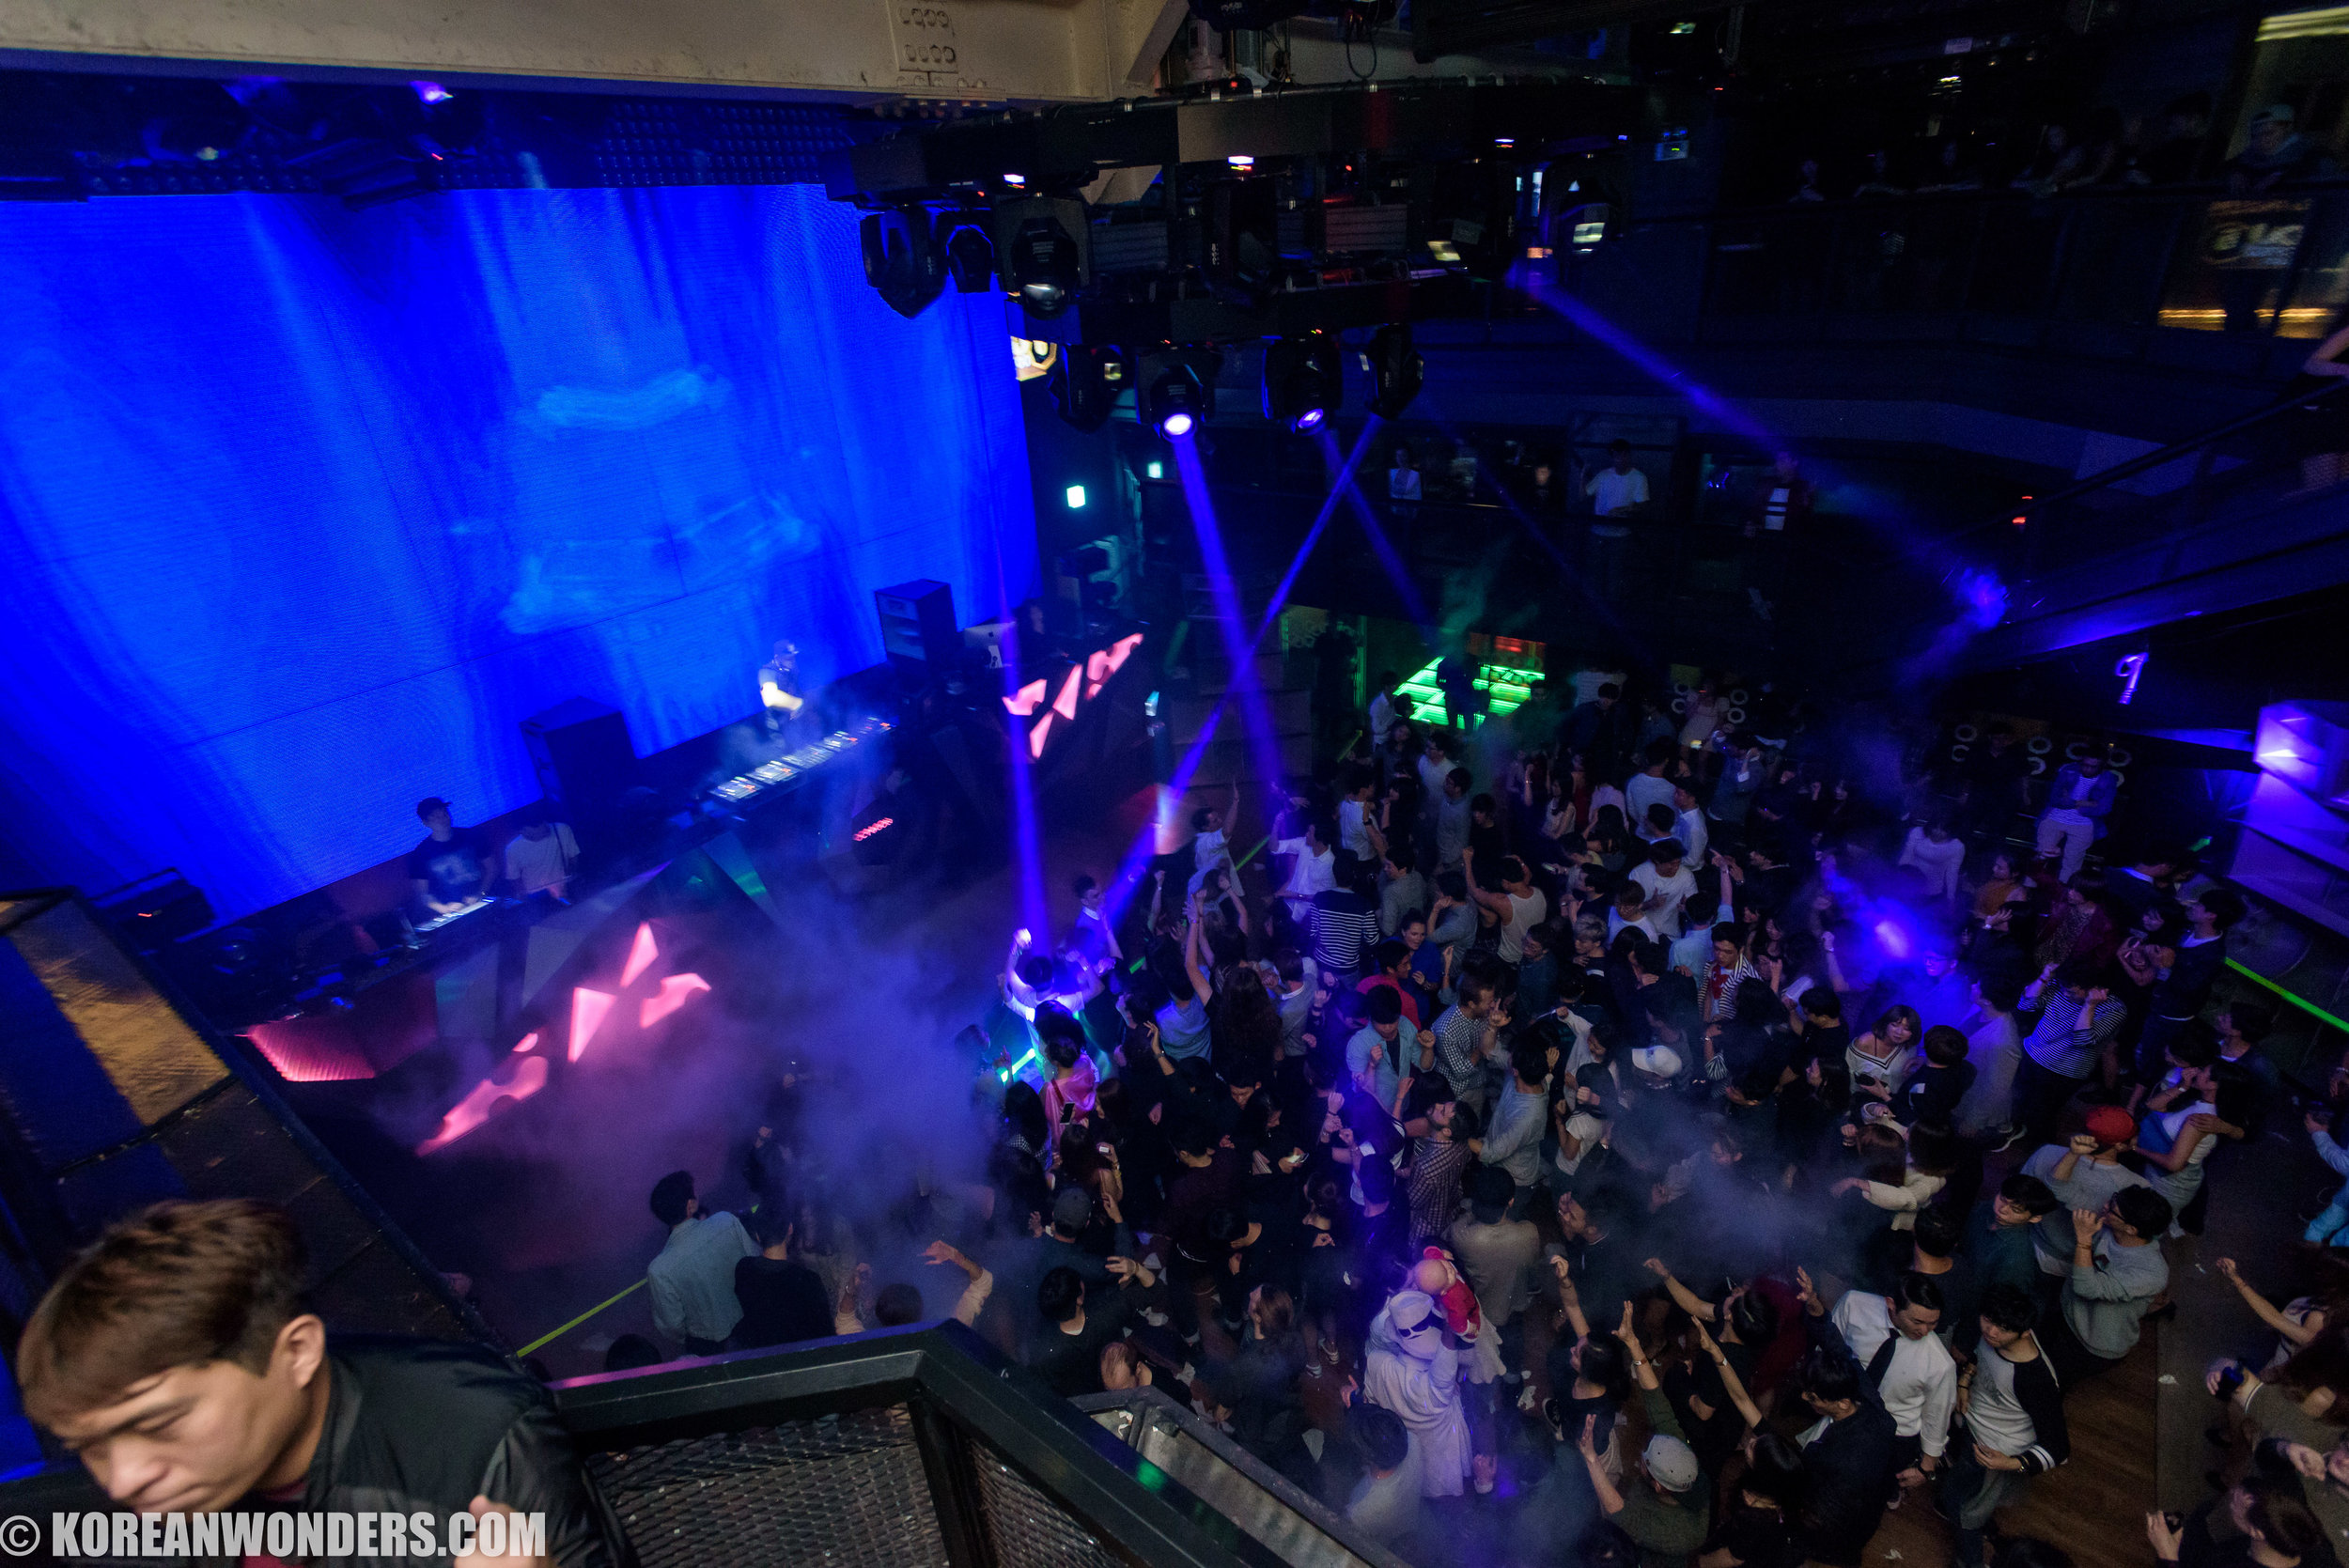 Party at Club Octagon - 2015.10.02 (Fri)